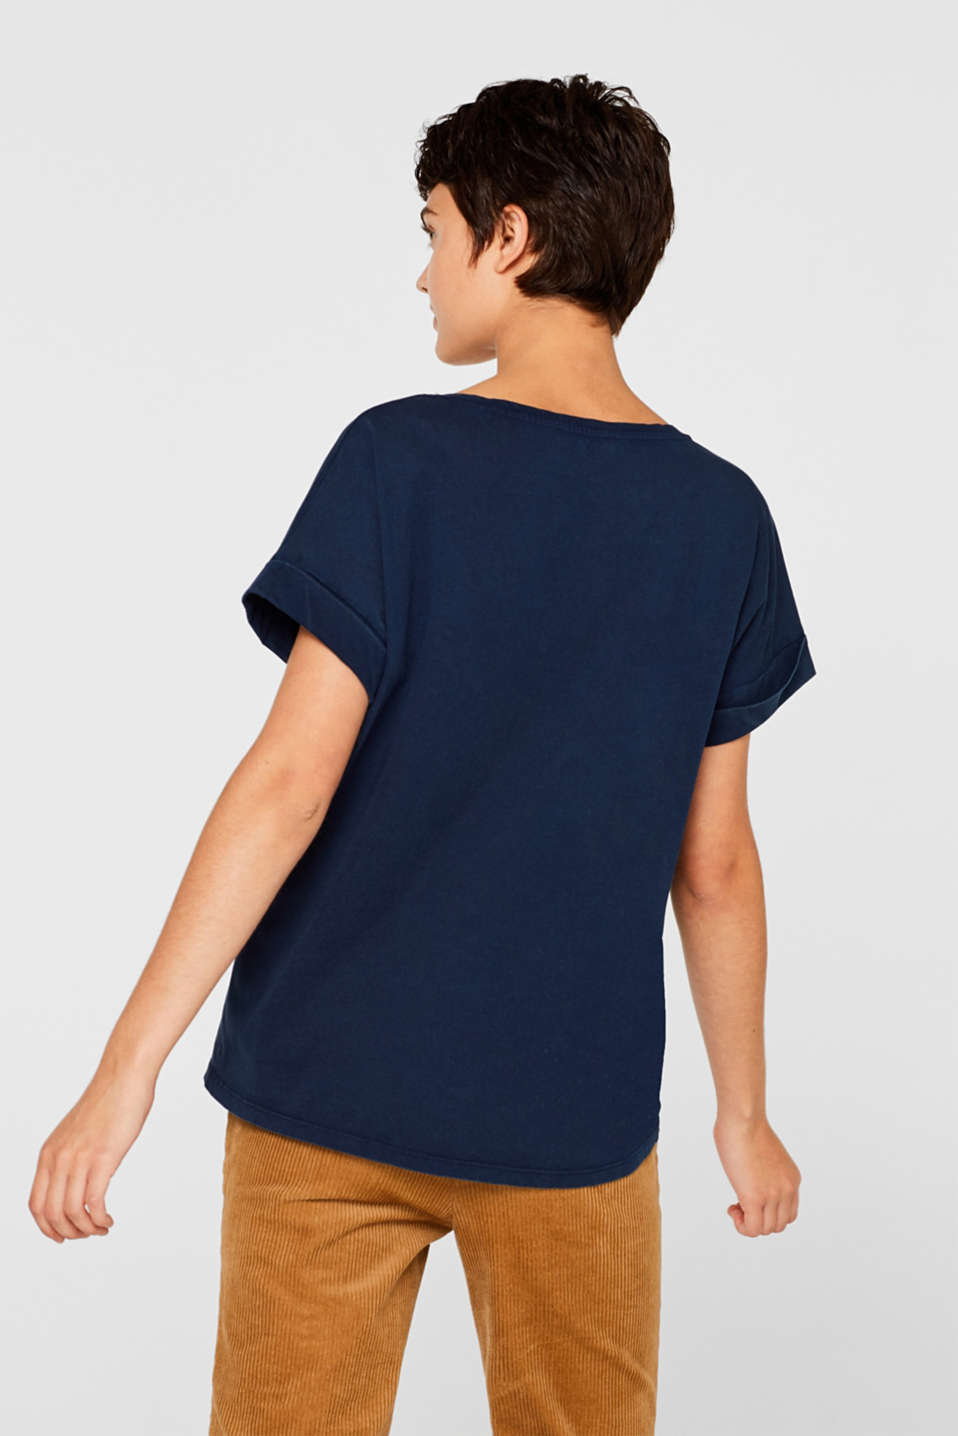 T-shirt with a casual cut, 100% cotton, NAVY, detail image number 3